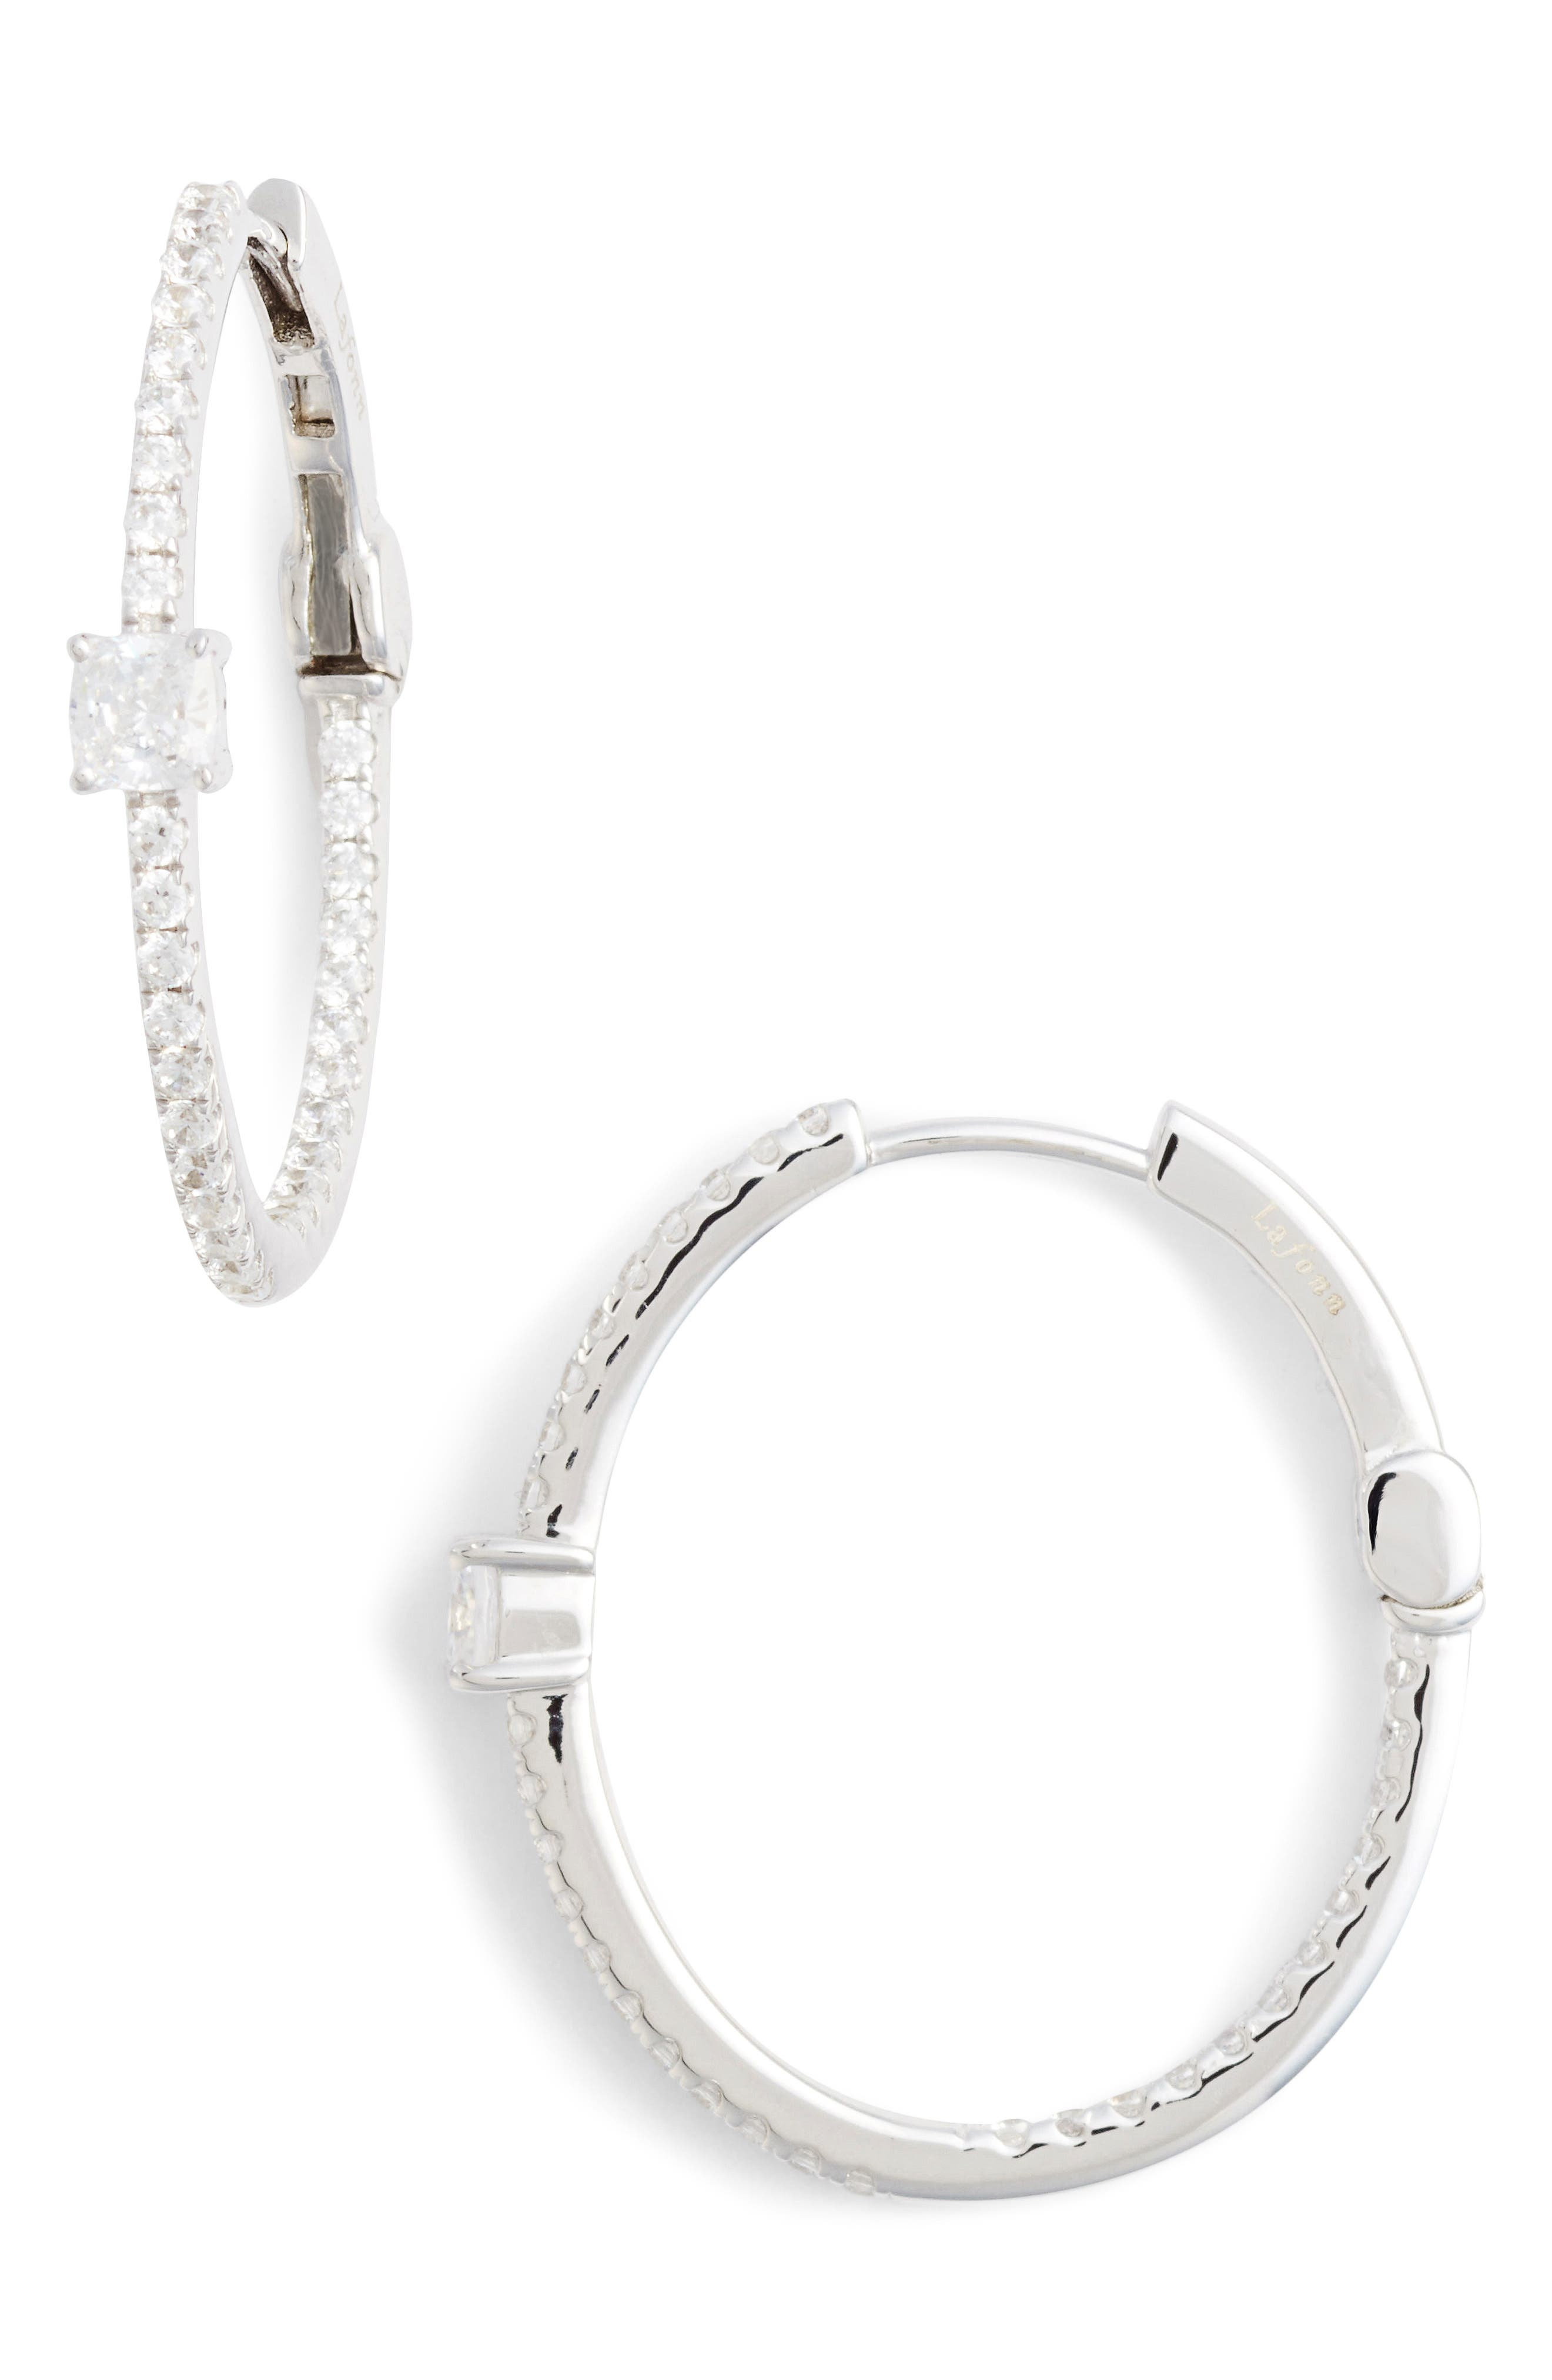 Simulated Diamond Hoop Earrings,                             Main thumbnail 1, color,                             Silver/ Clear